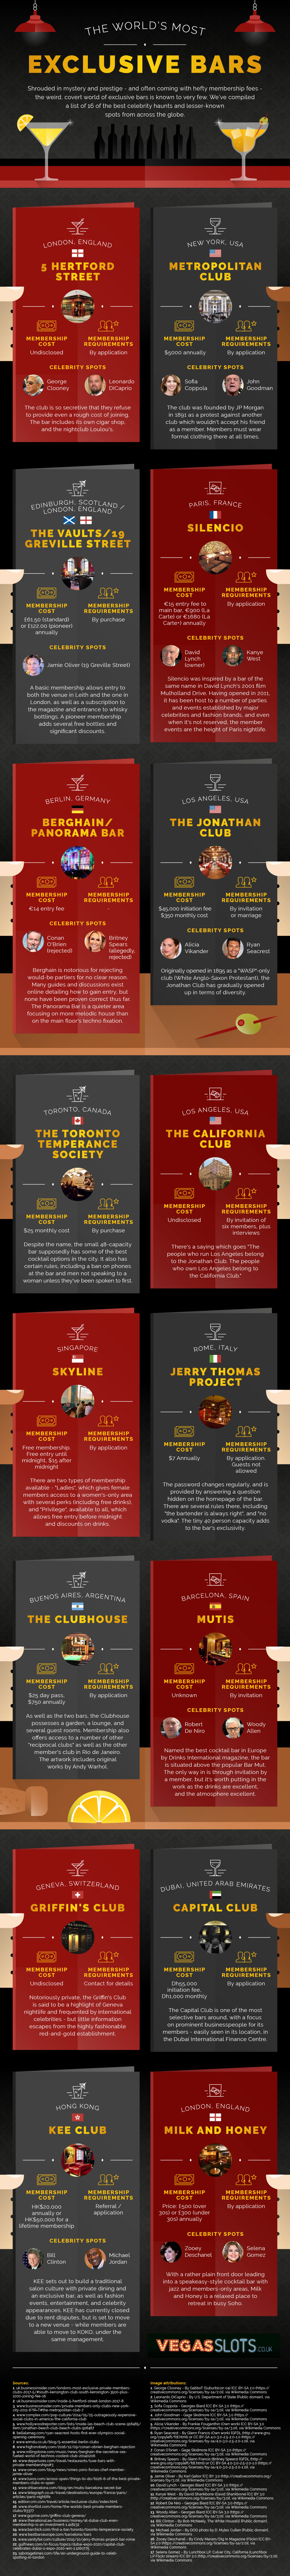 The World's Most Exclusive Bars